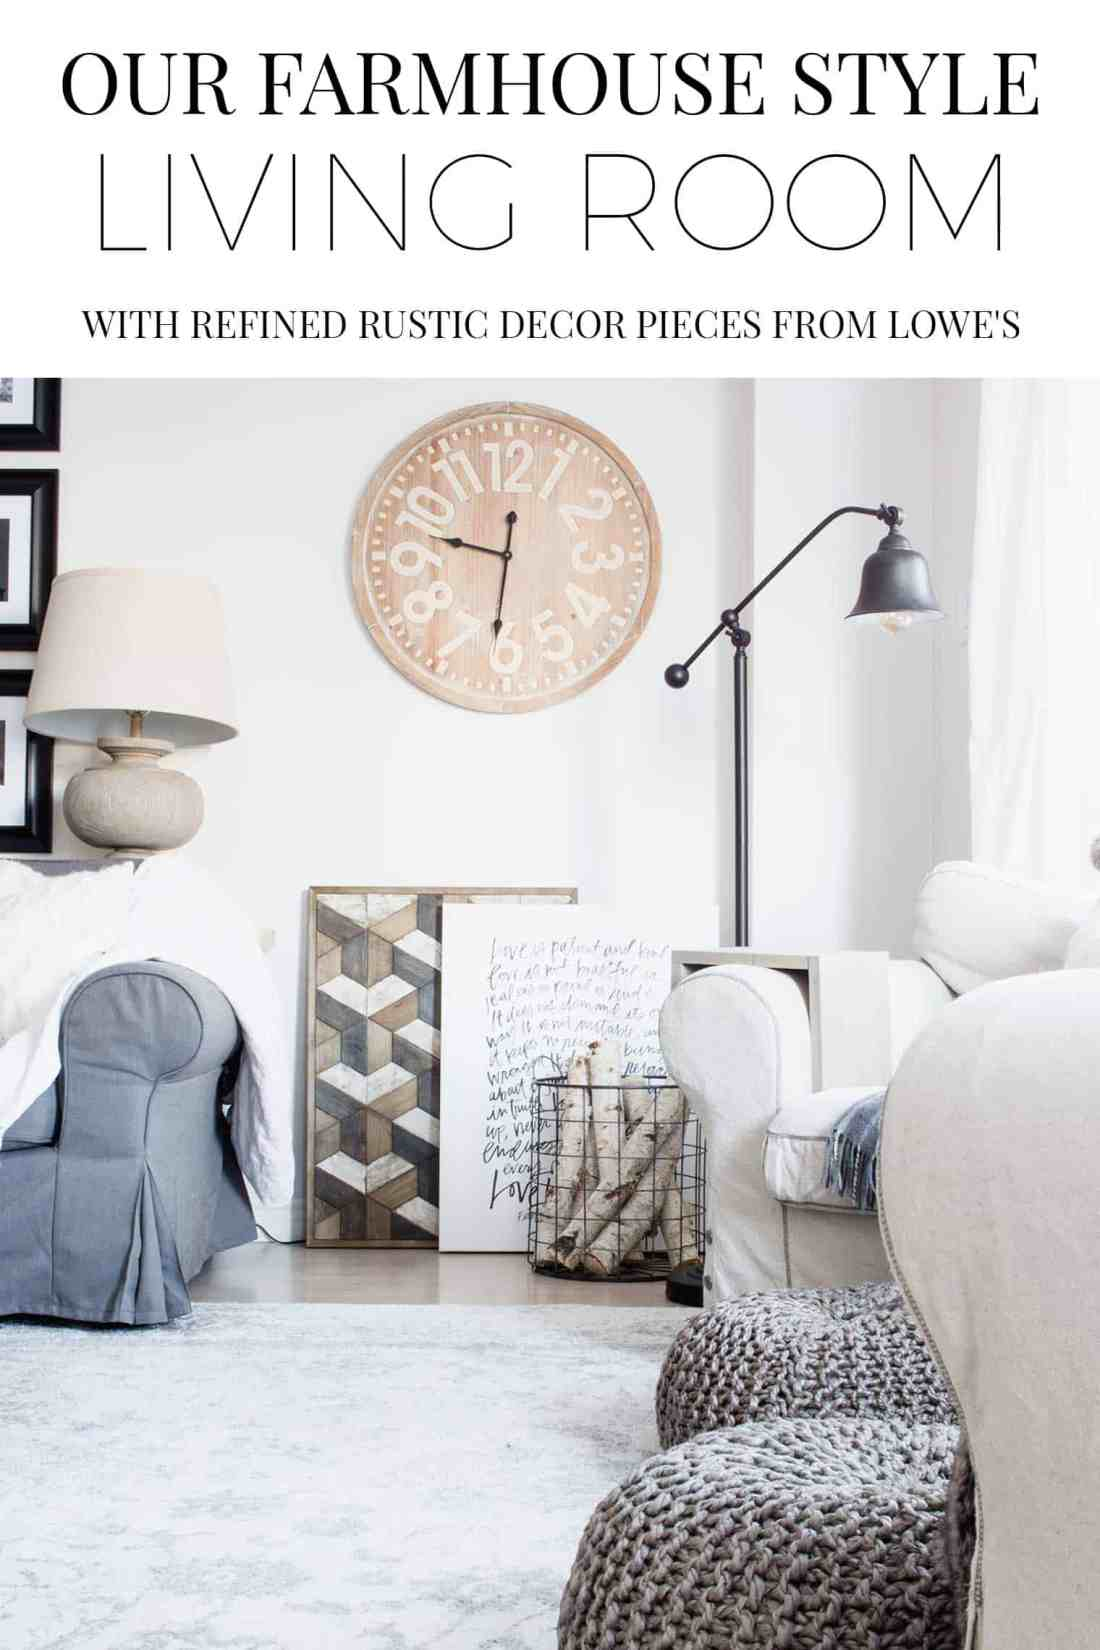 our-farmhouse-style-living-room-with-refined-rustic-decor-pieces-from-lowe's-pin